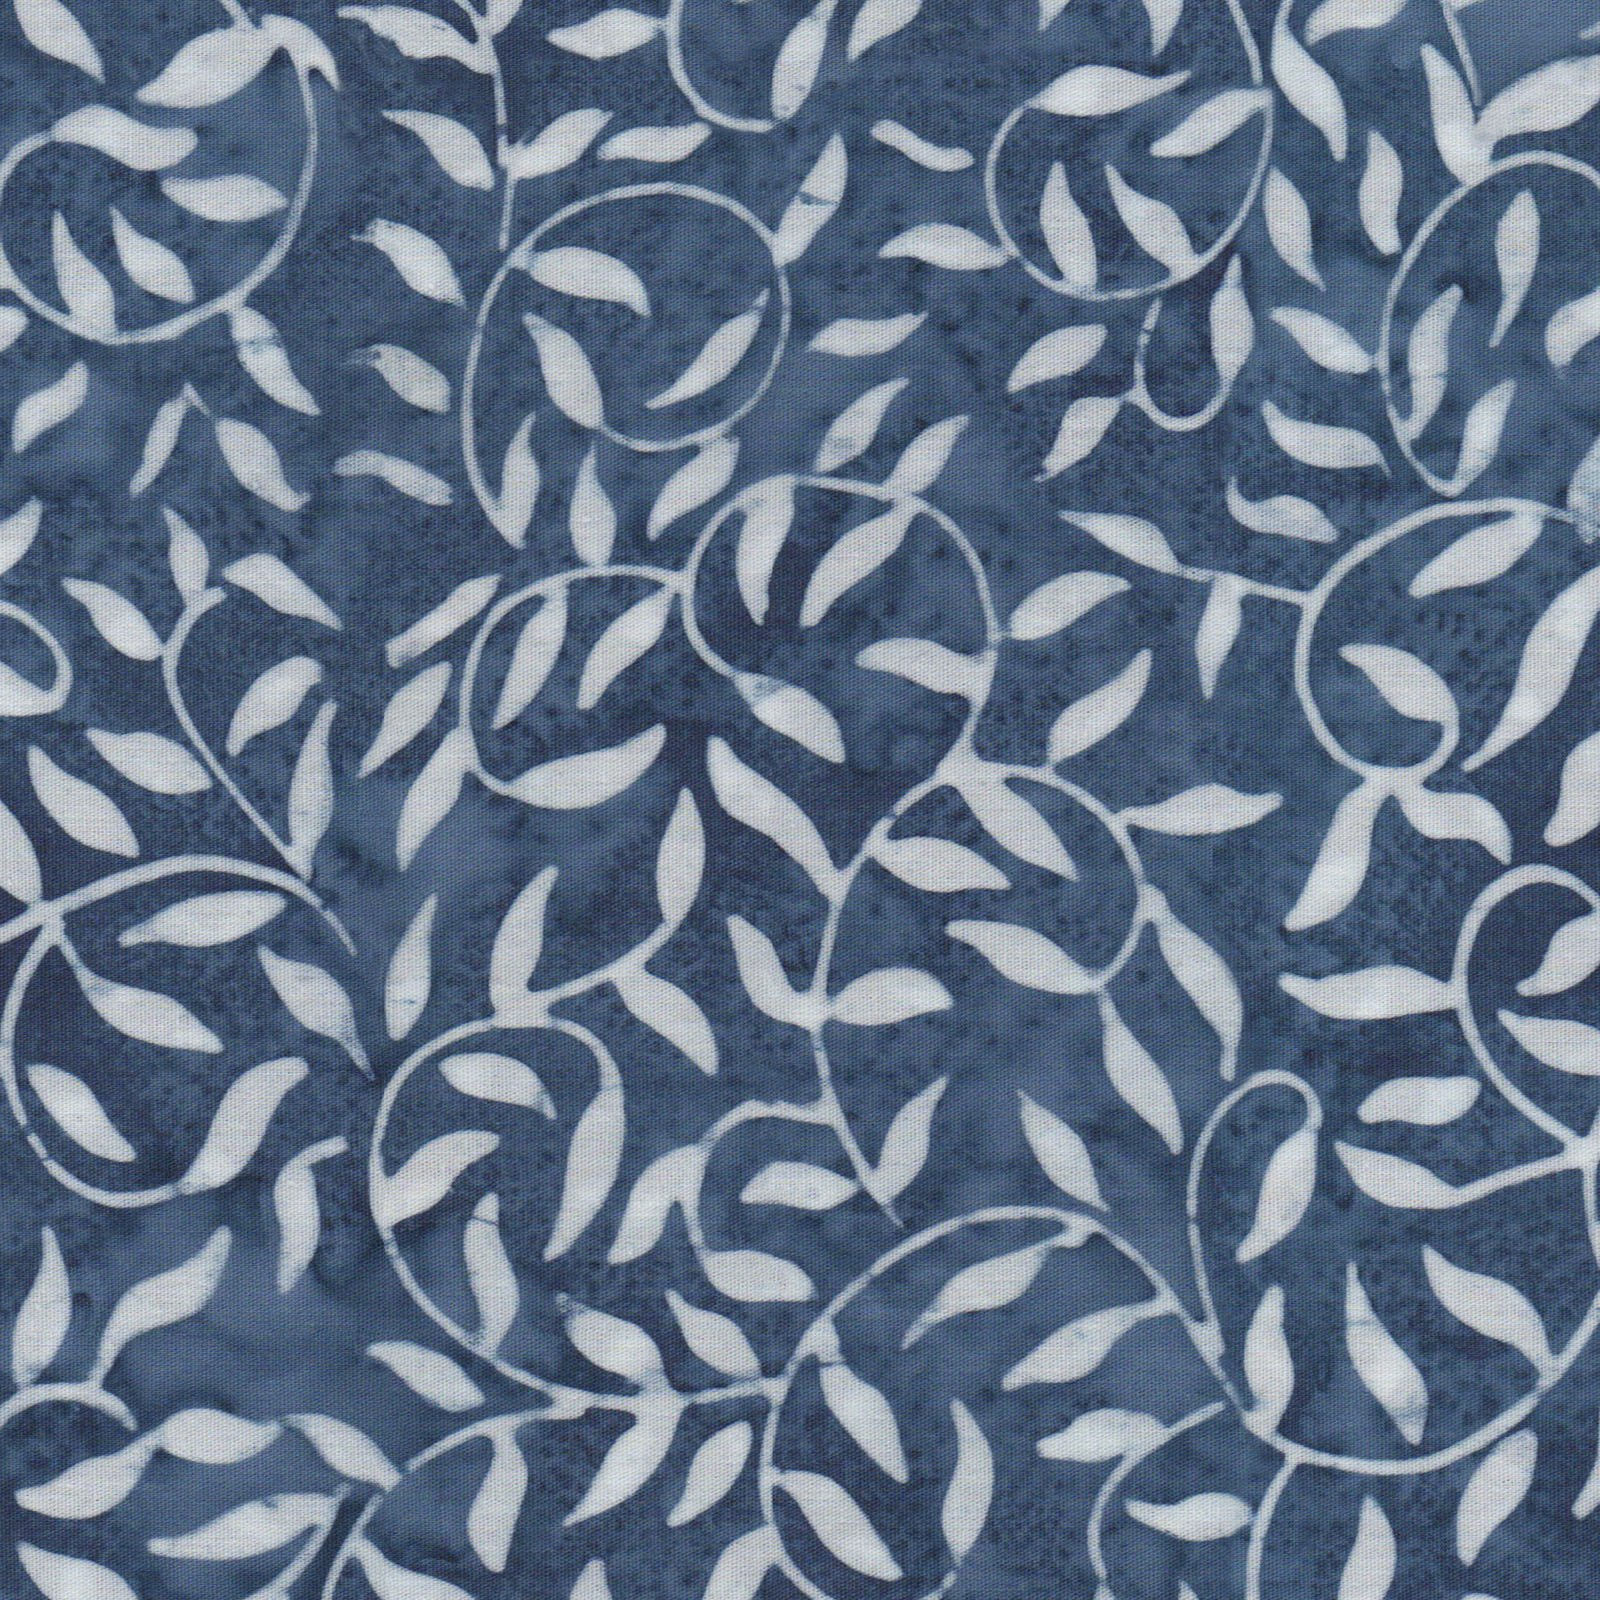 EESC-B51 NW - COLOR THERAPY BATIKS BY MAYWOOD STUDIO SCROLL-VINE NAVY/WHITE - ARRIVING DECEMBER 2020